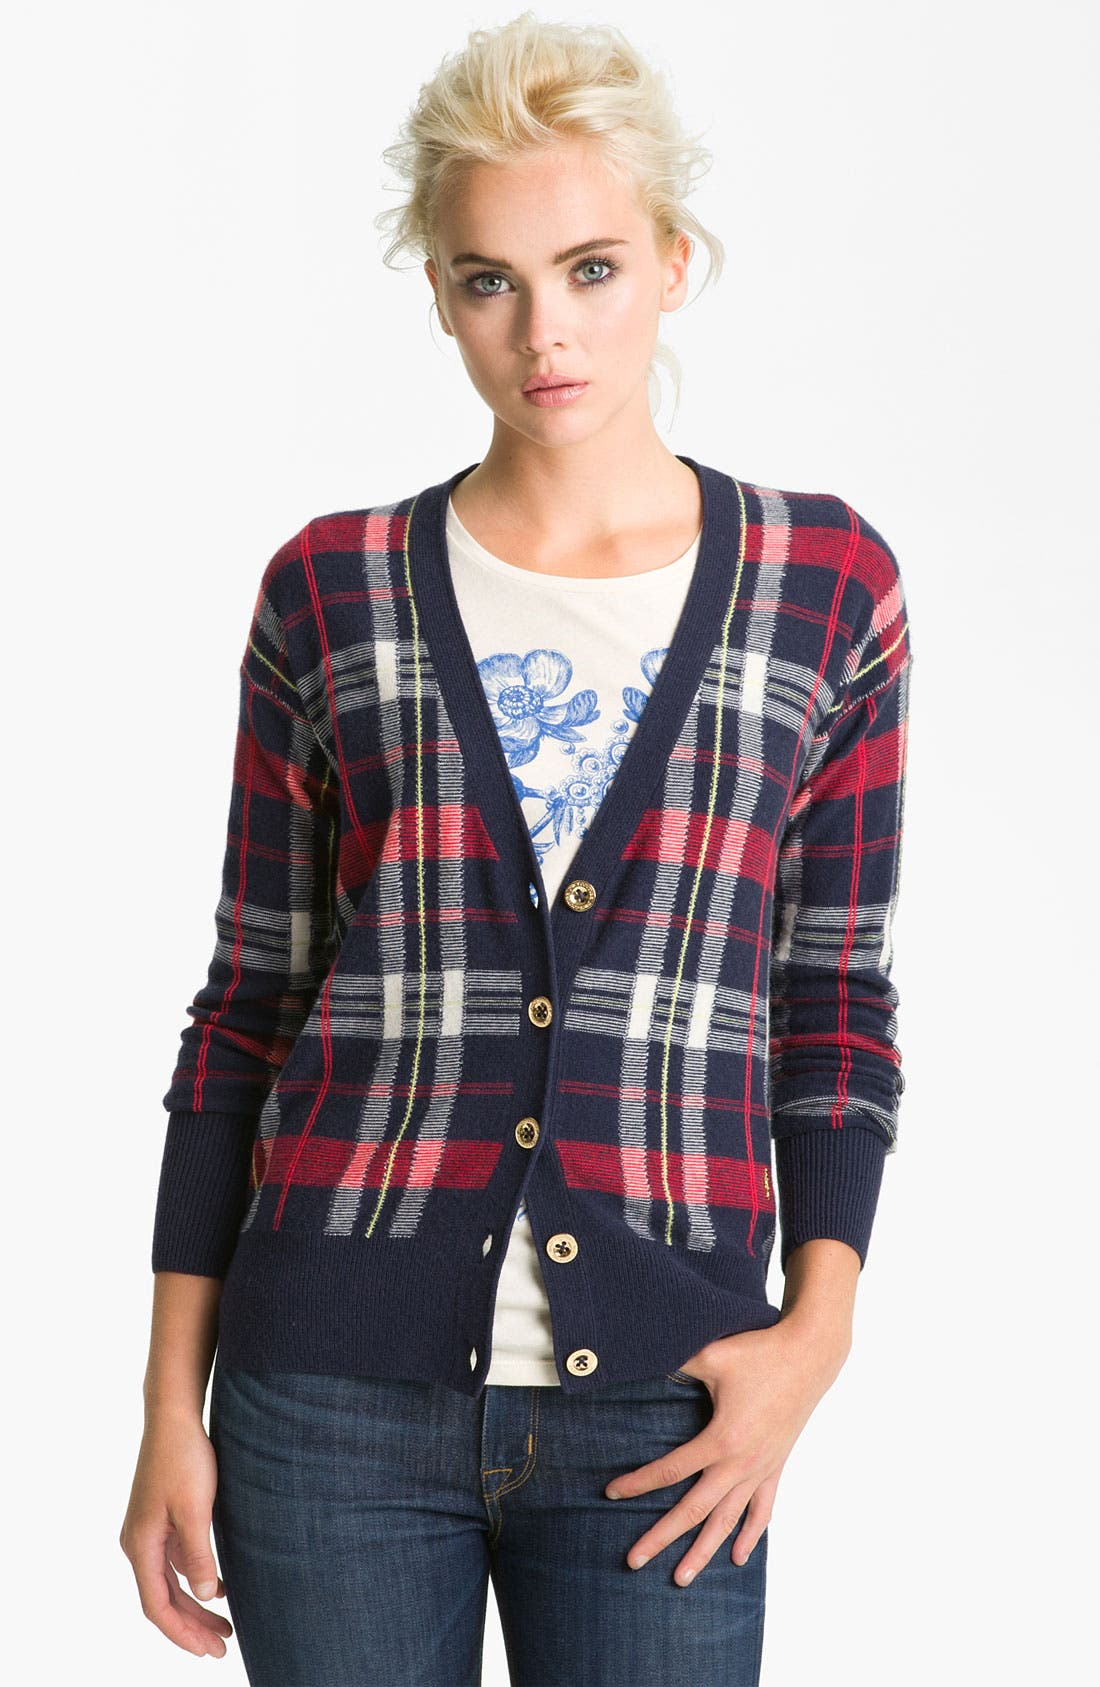 Alternate Image 1 Selected - Juicy Couture Plaid Cardigan